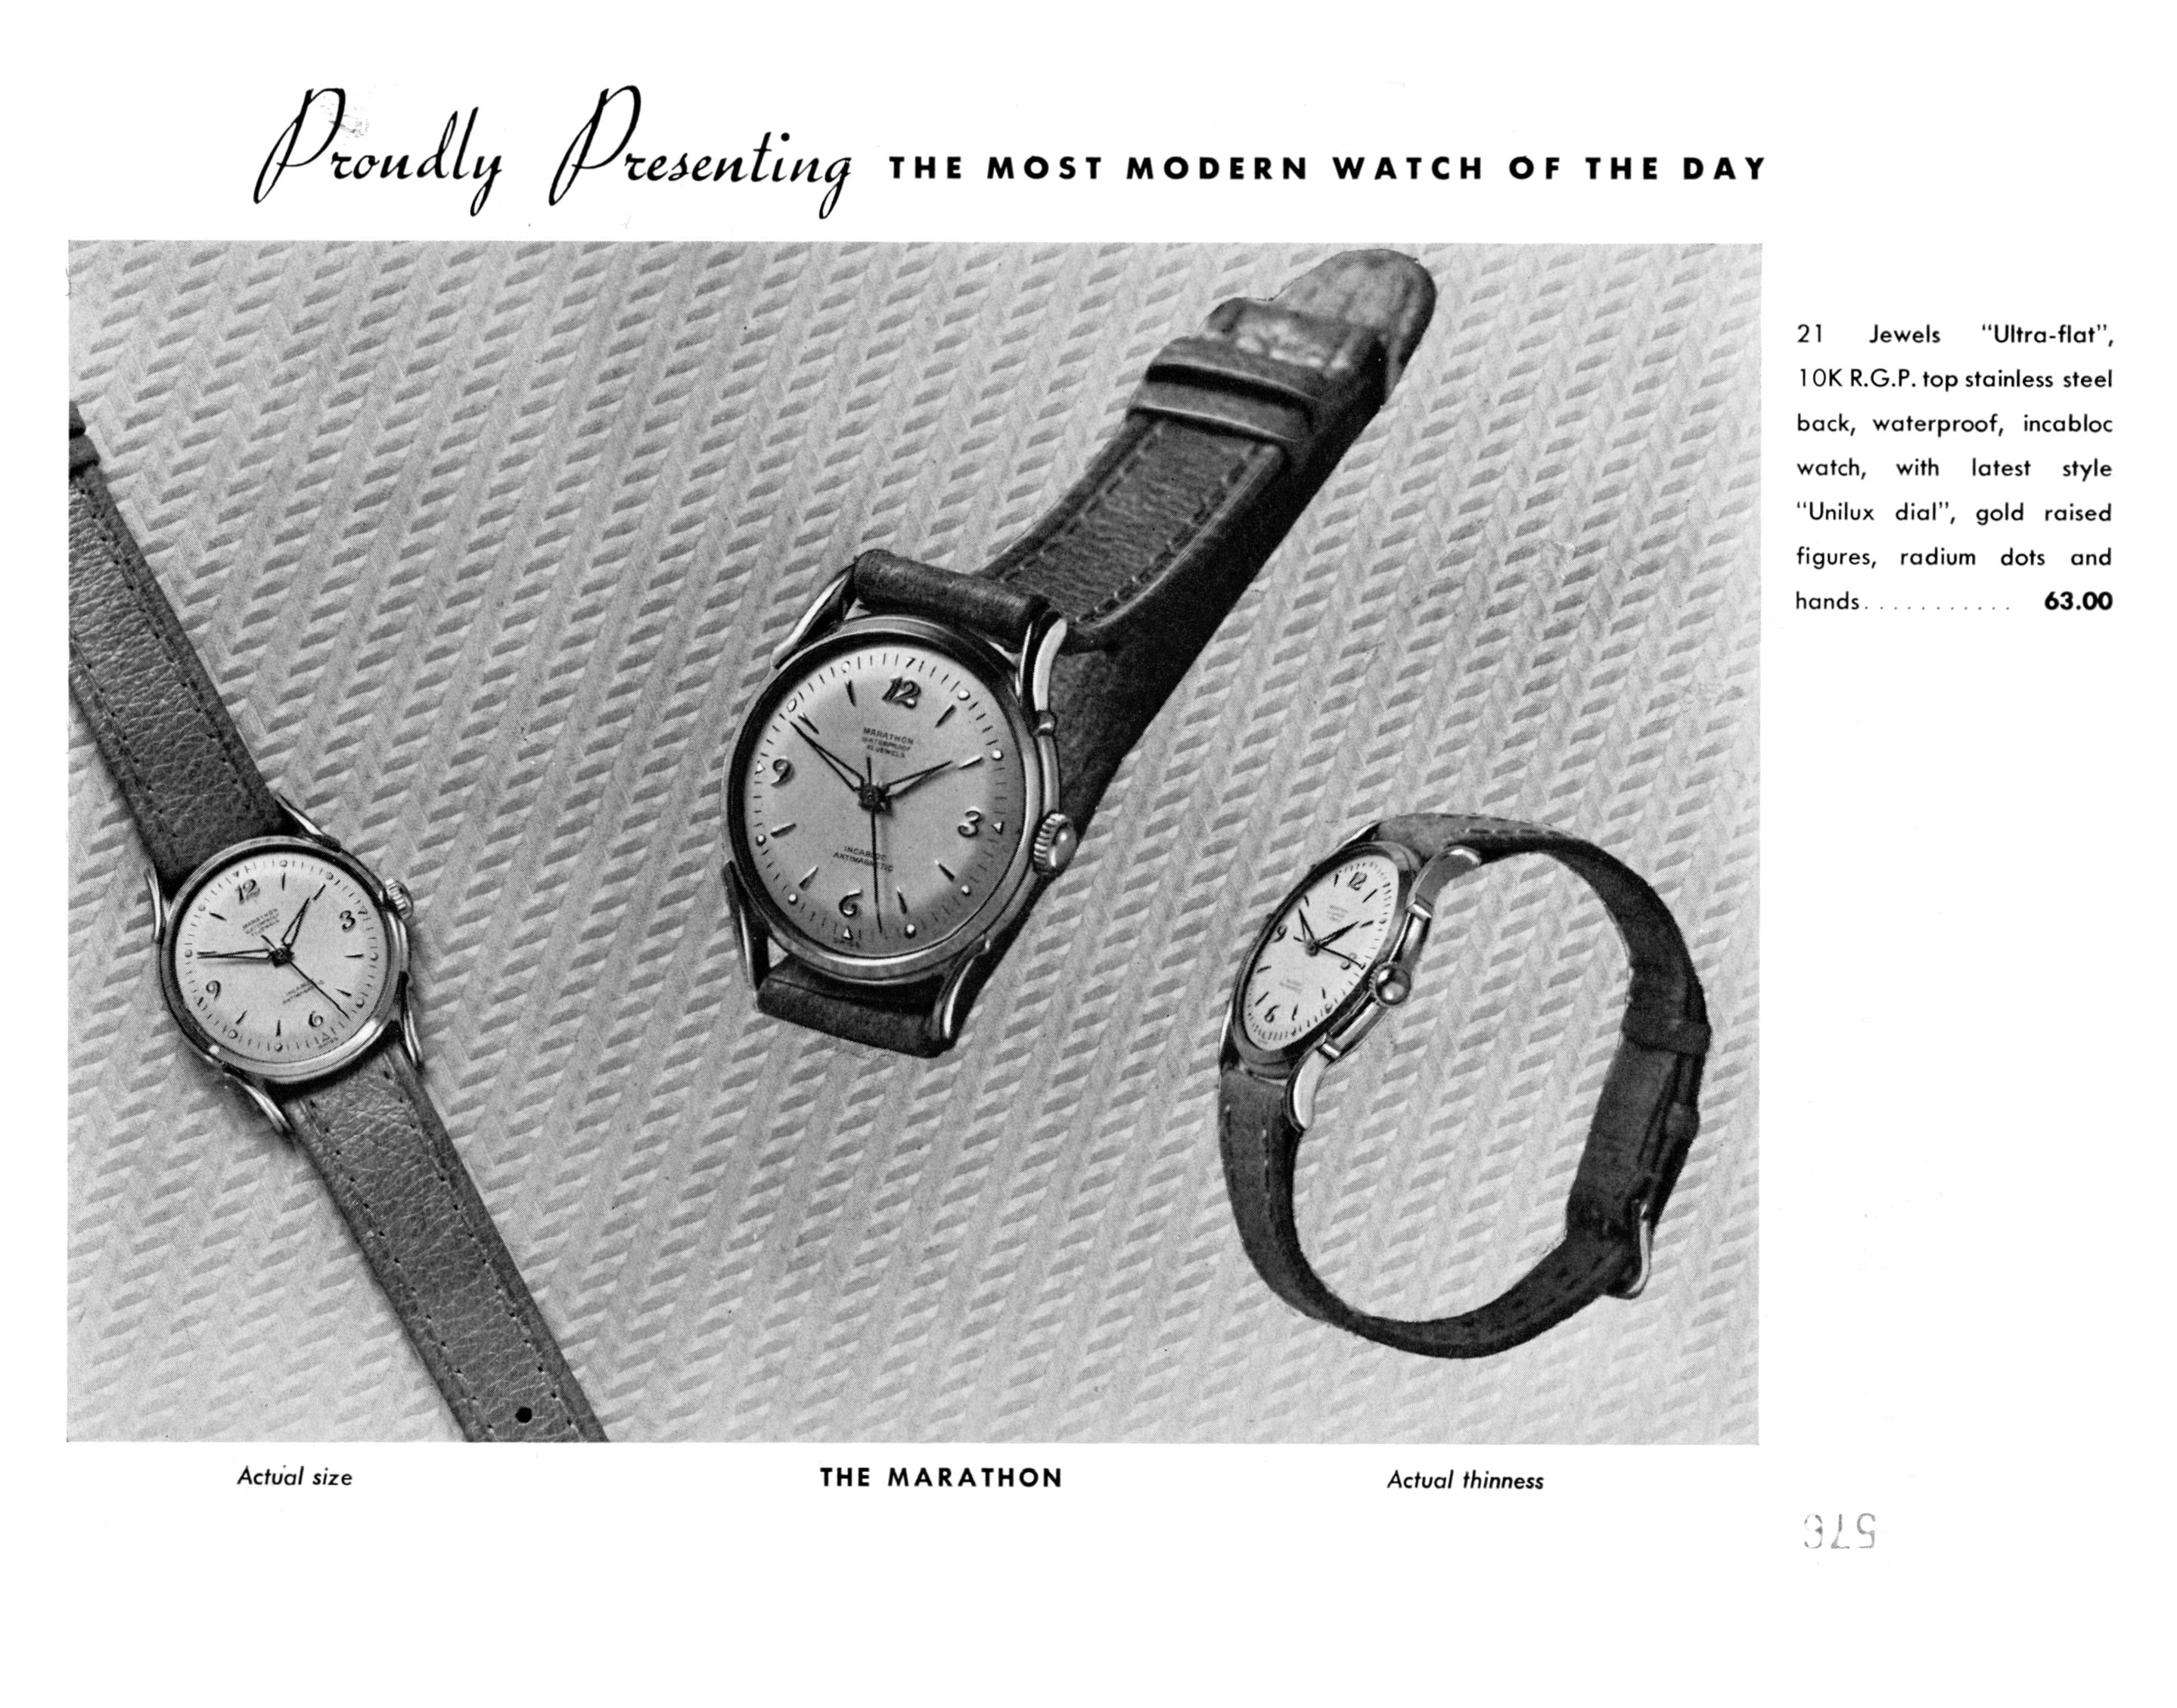 black and white ad: 'Proudly Presenting the most modern watch of the day' above images of three watches